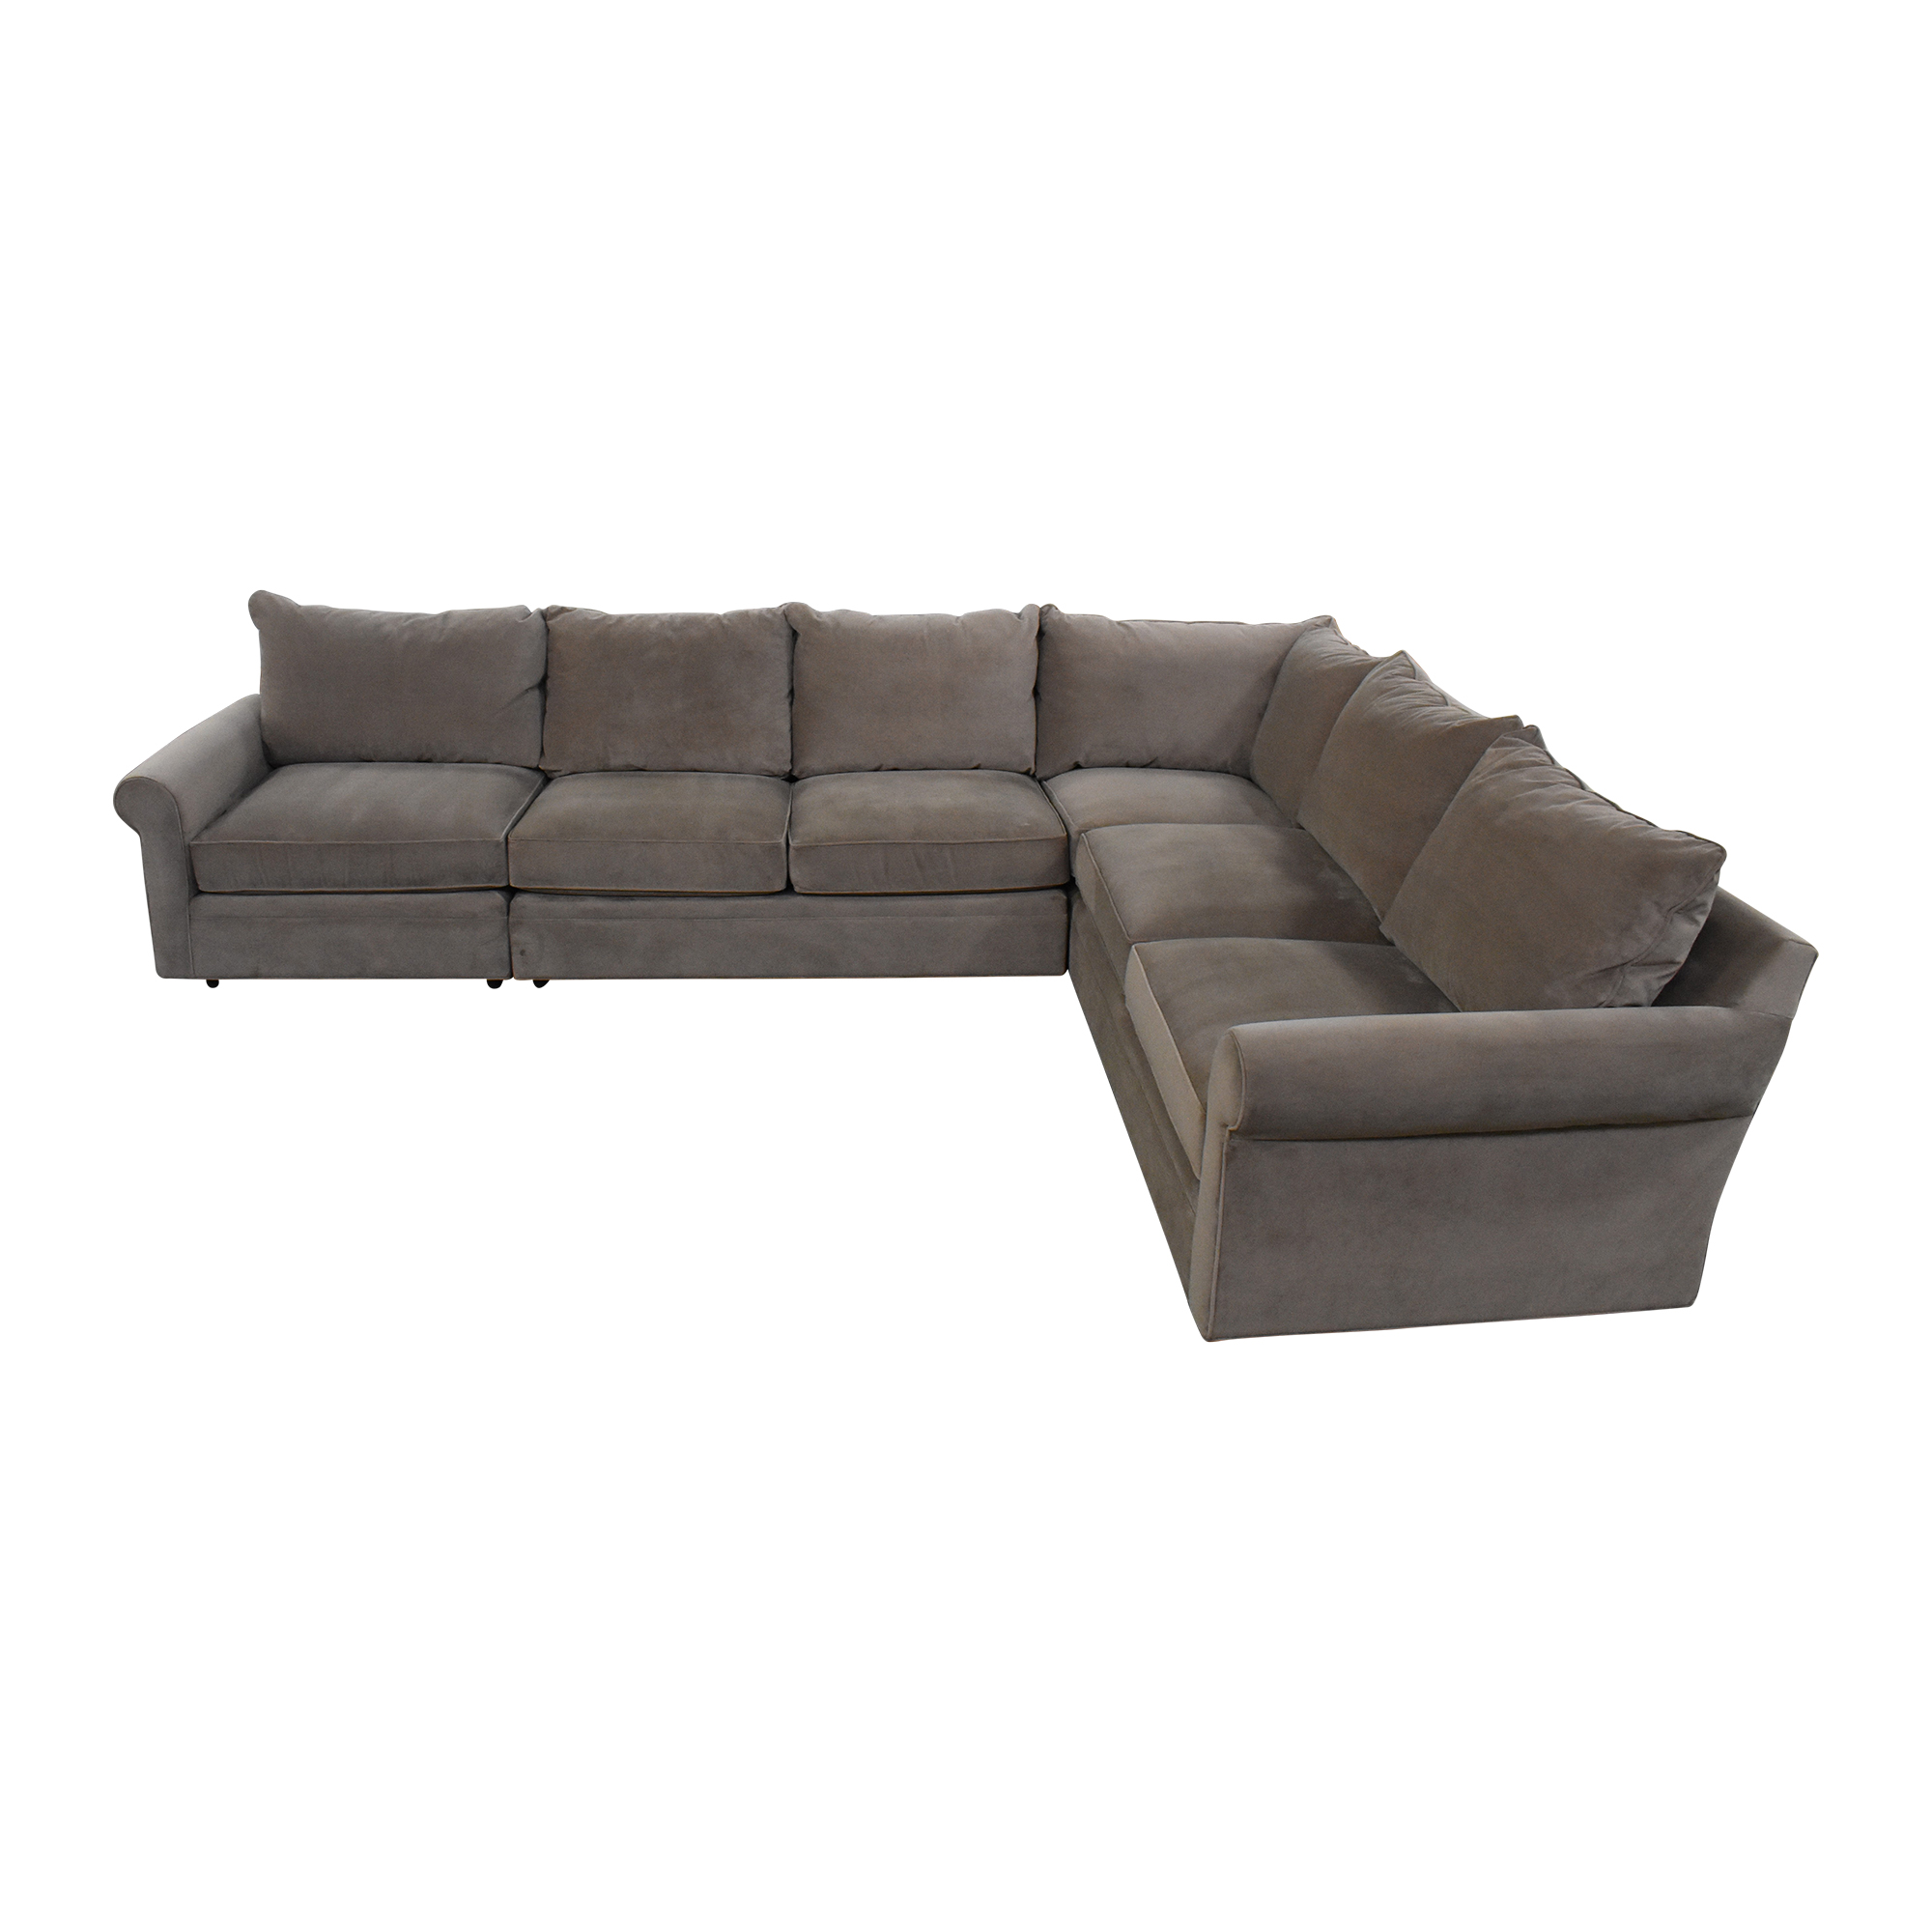 buy Macy's Modern Concepts L Shaped Sectional Sofa Macy's